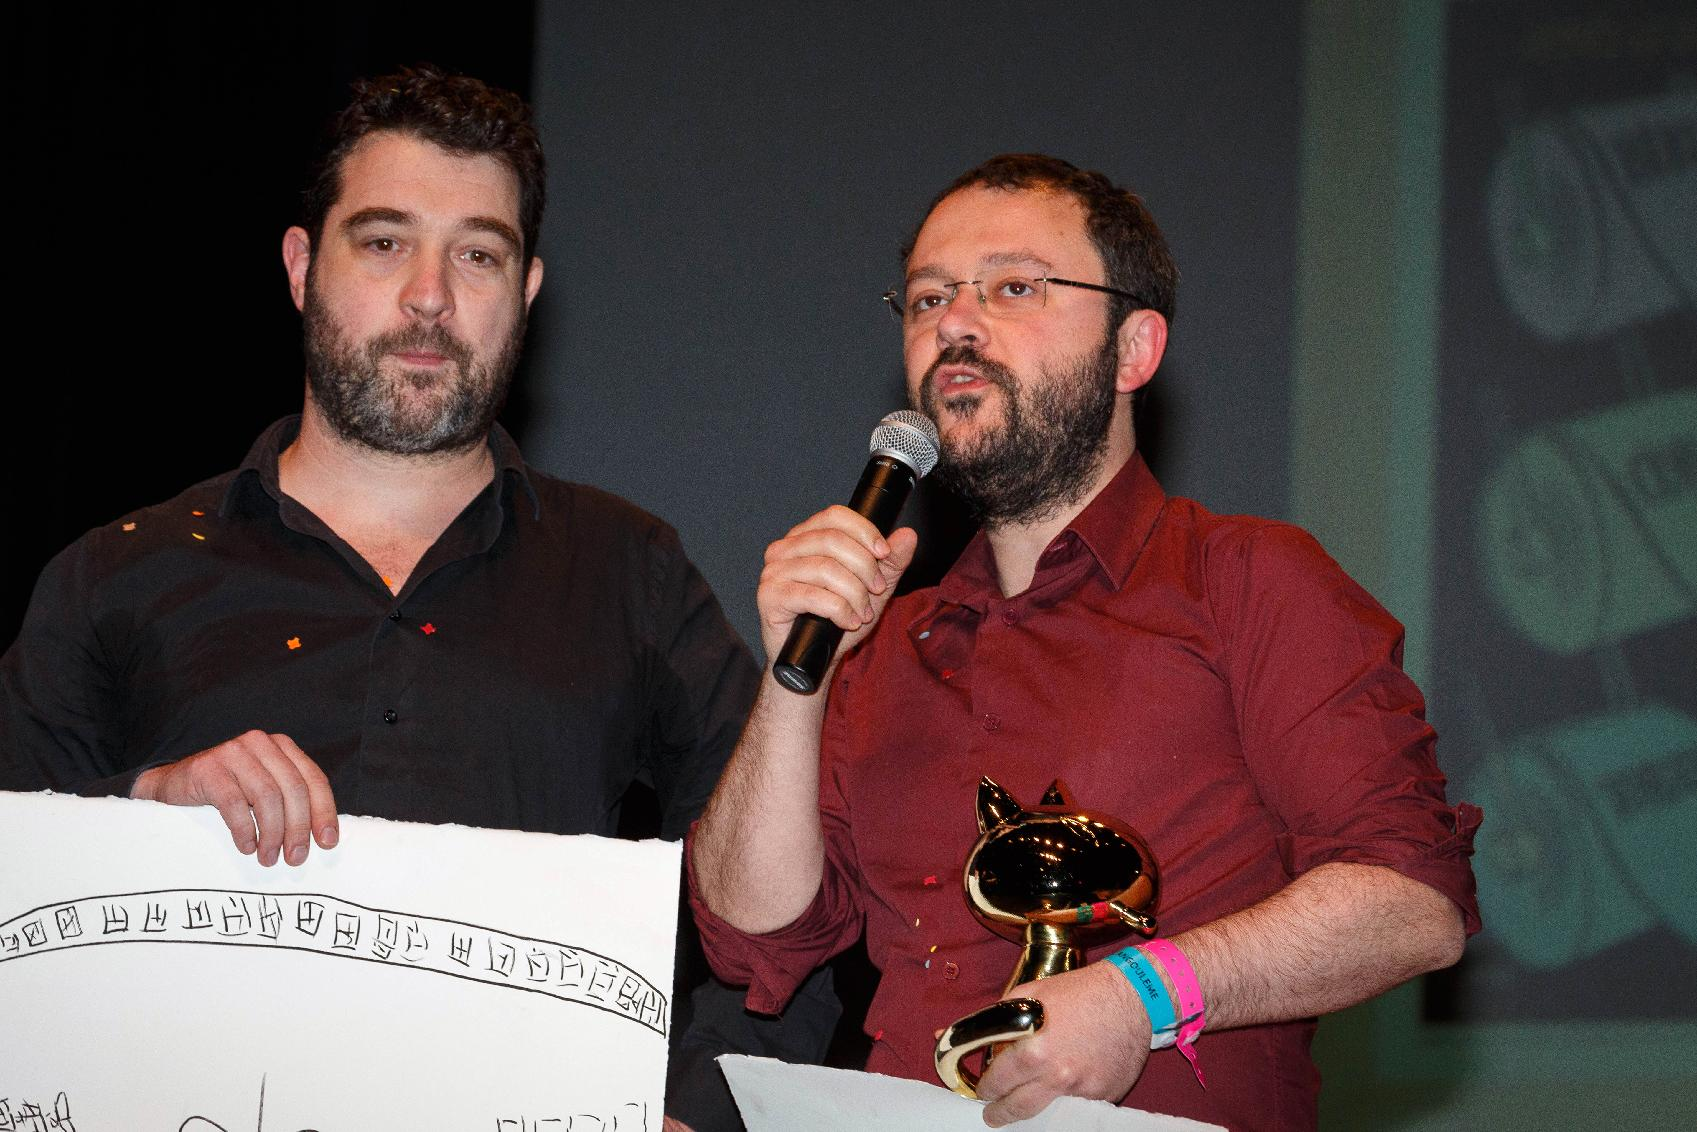 Top comics festival in France honours Charlie Hebdo contributor